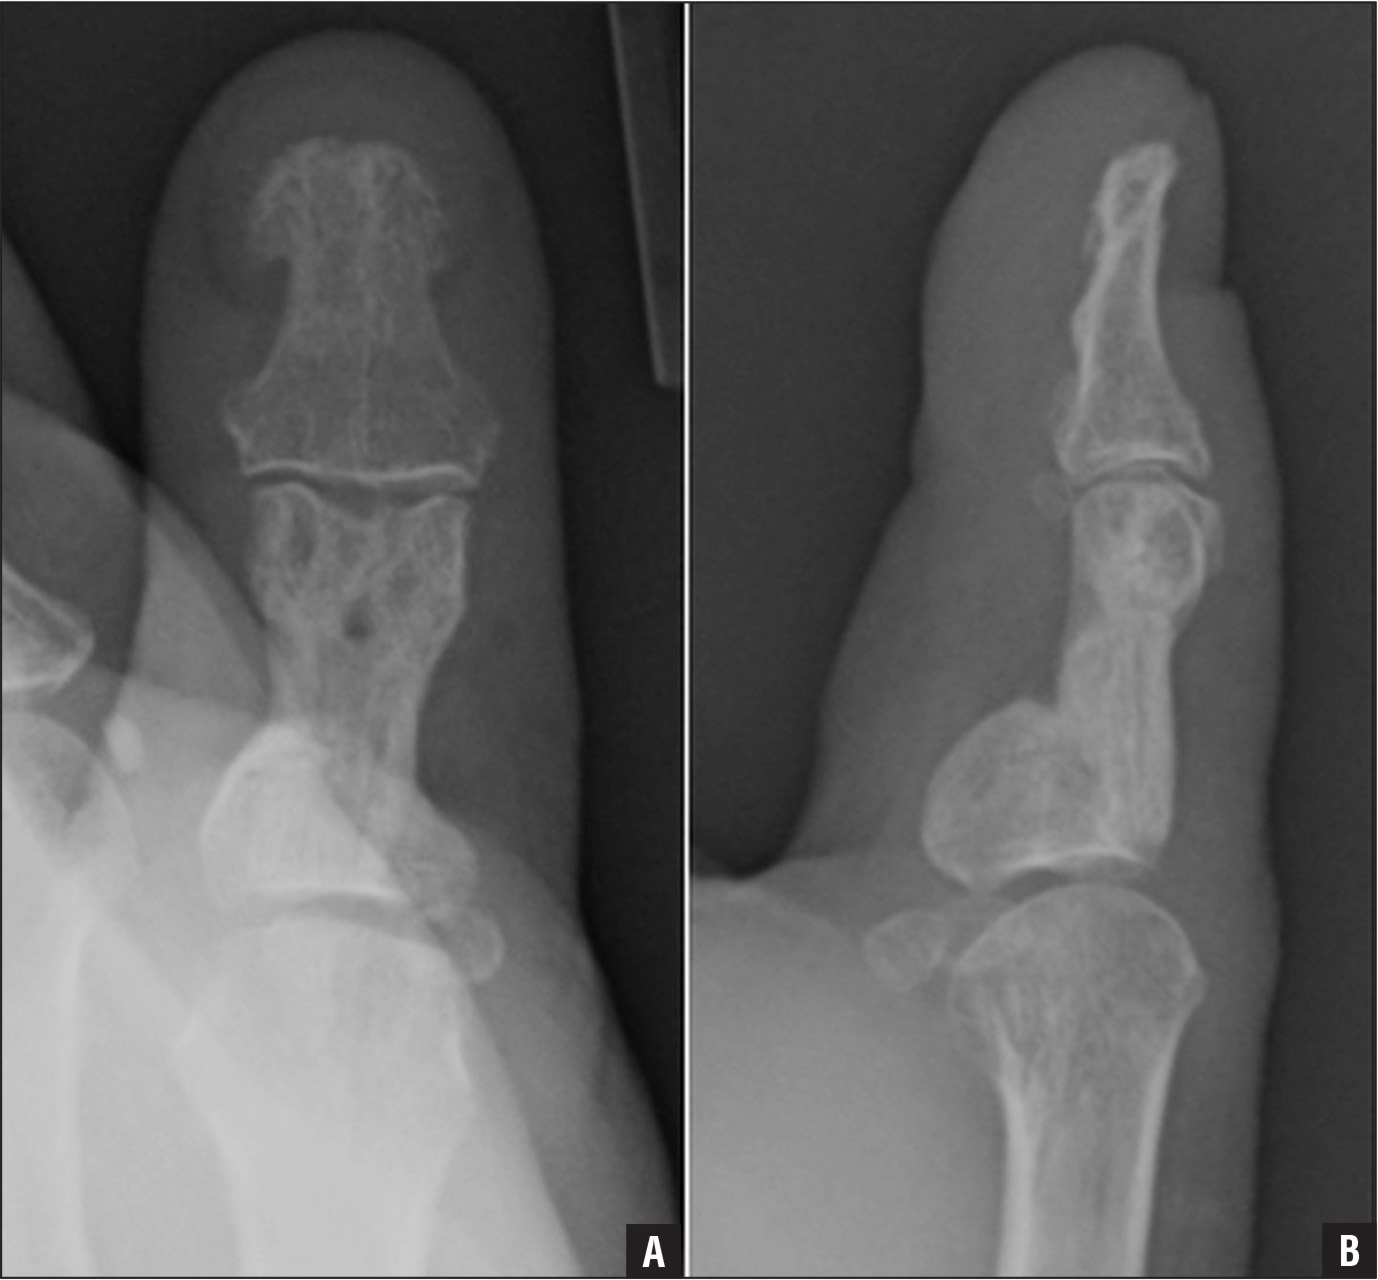 Posteroanterior (A) and lateral (B) radiographs at 6 months showing solid union.